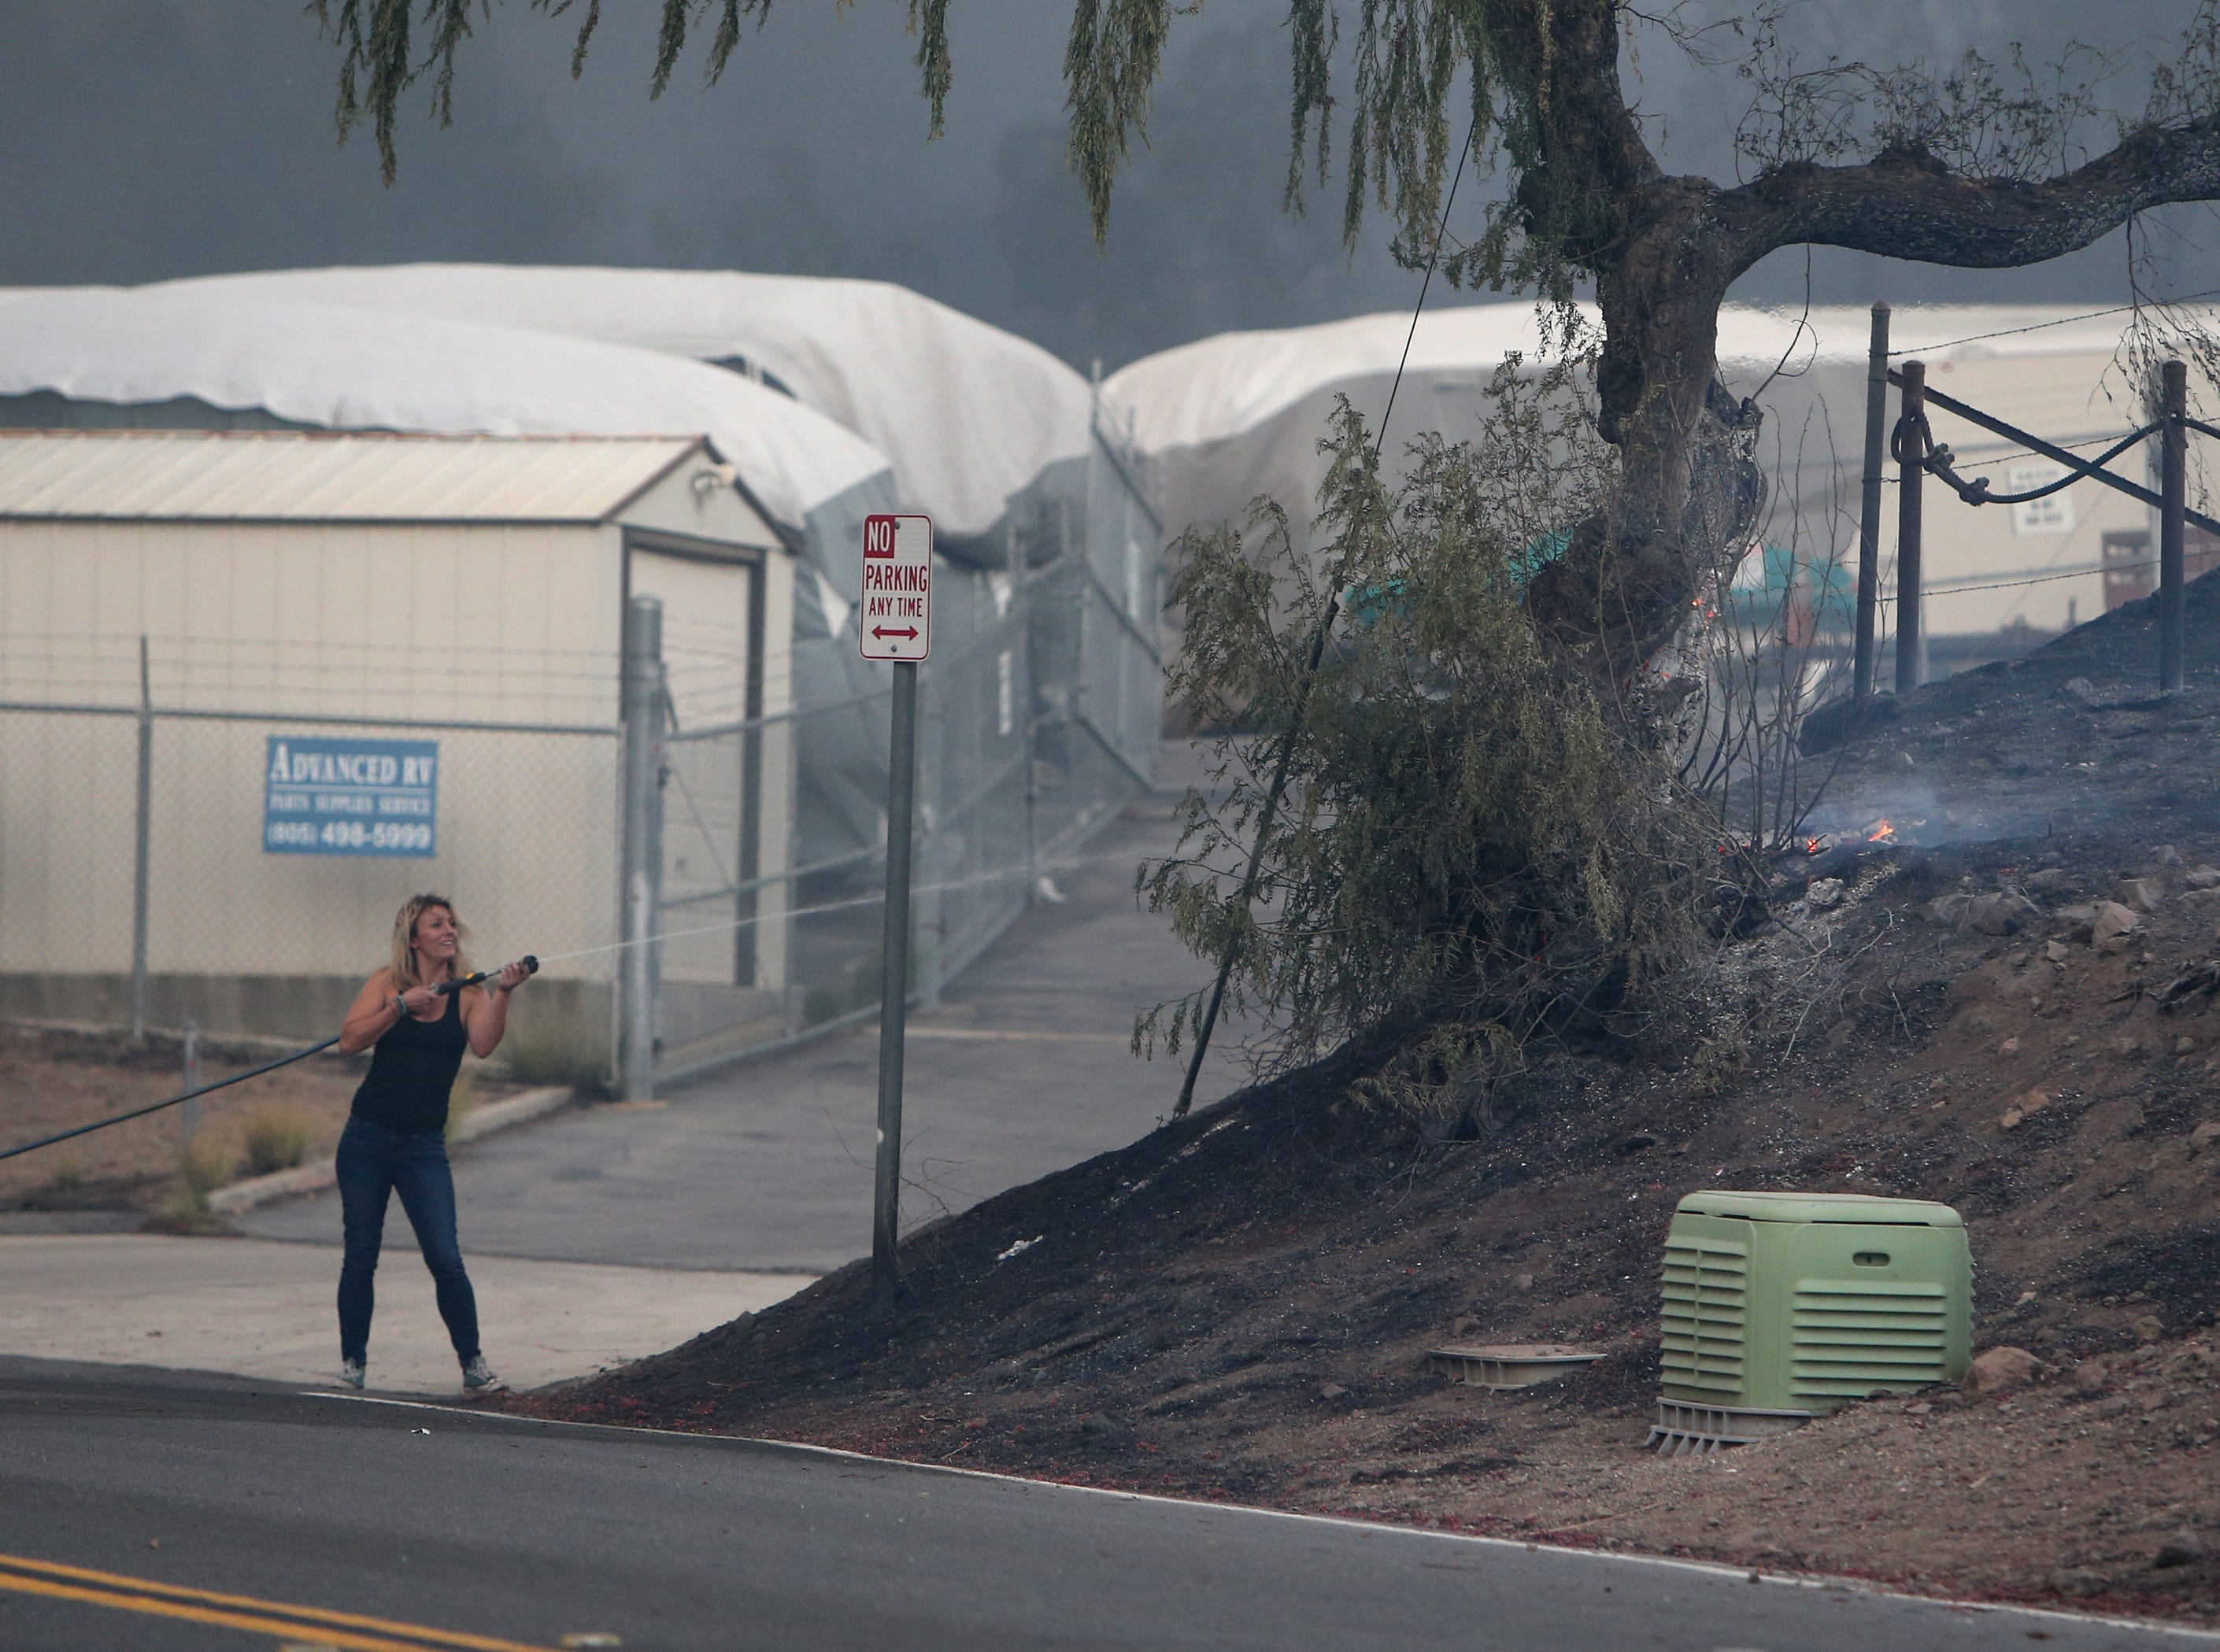 Shelby Farkas puts out a small brush fire Thursday with a garden hose she got from her boyfriend's mother at a mobile home just off Old Conejo Road in Newbury Park.